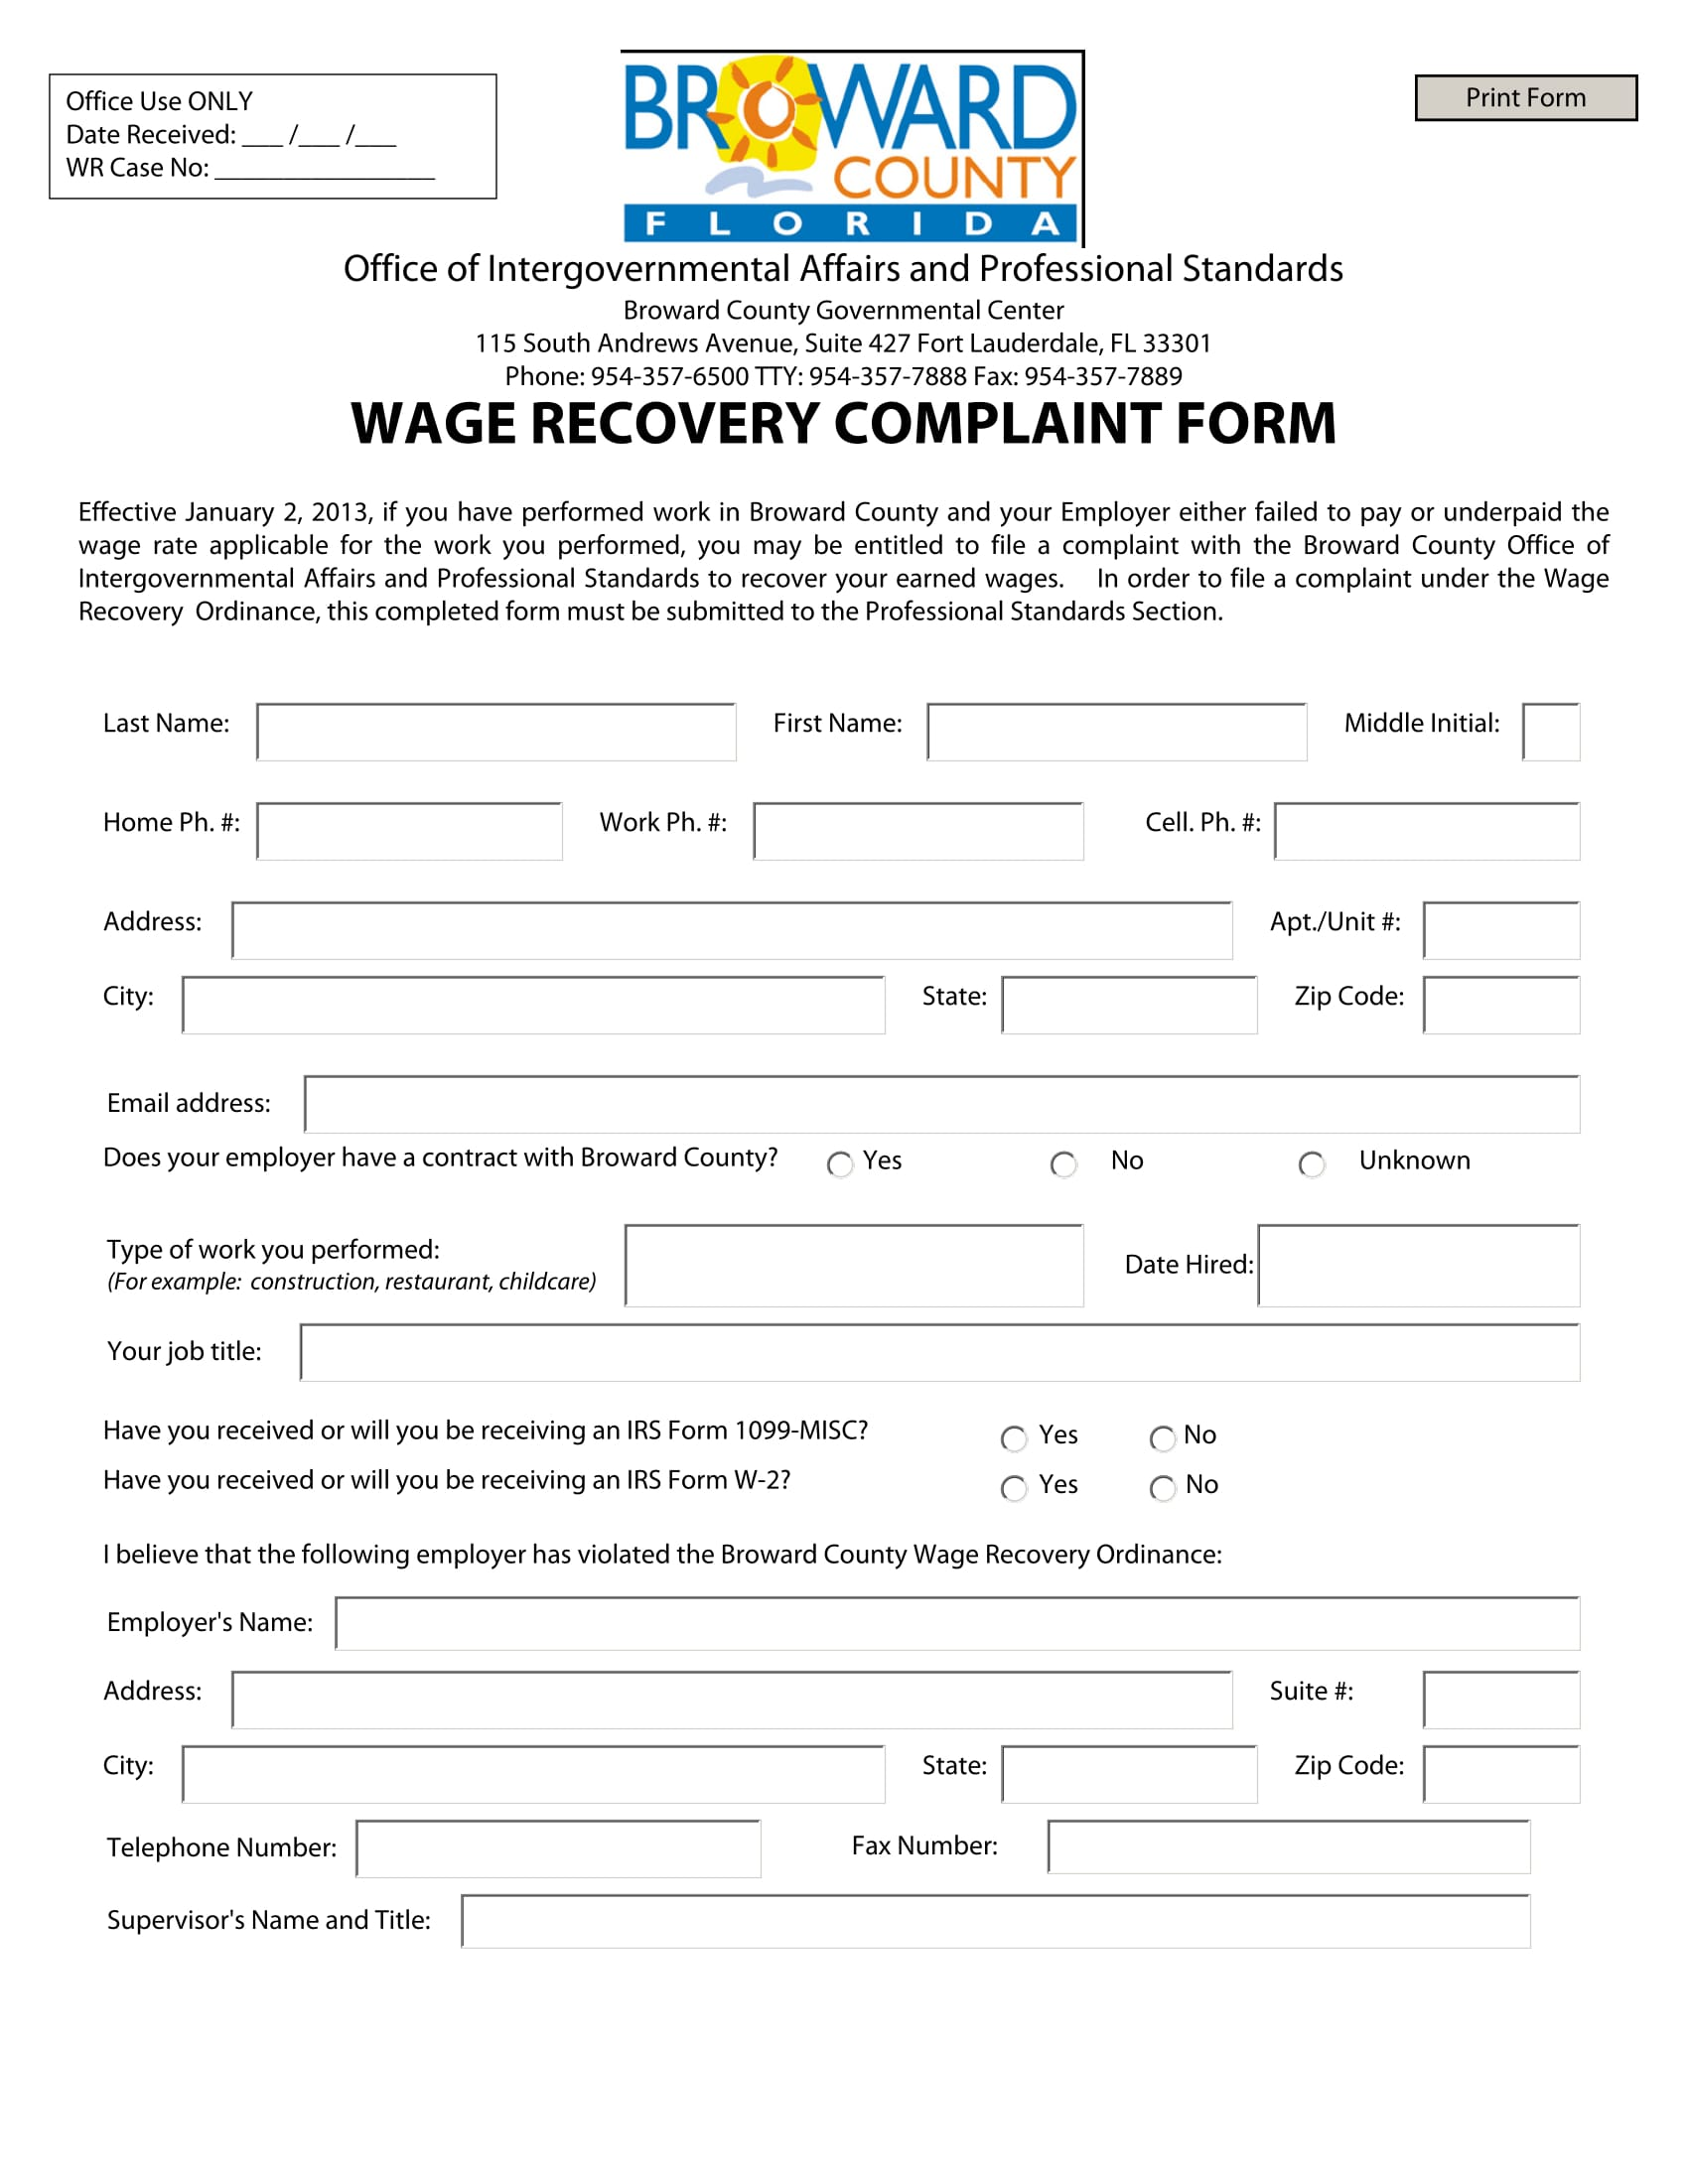 wage recovery complaint form 1